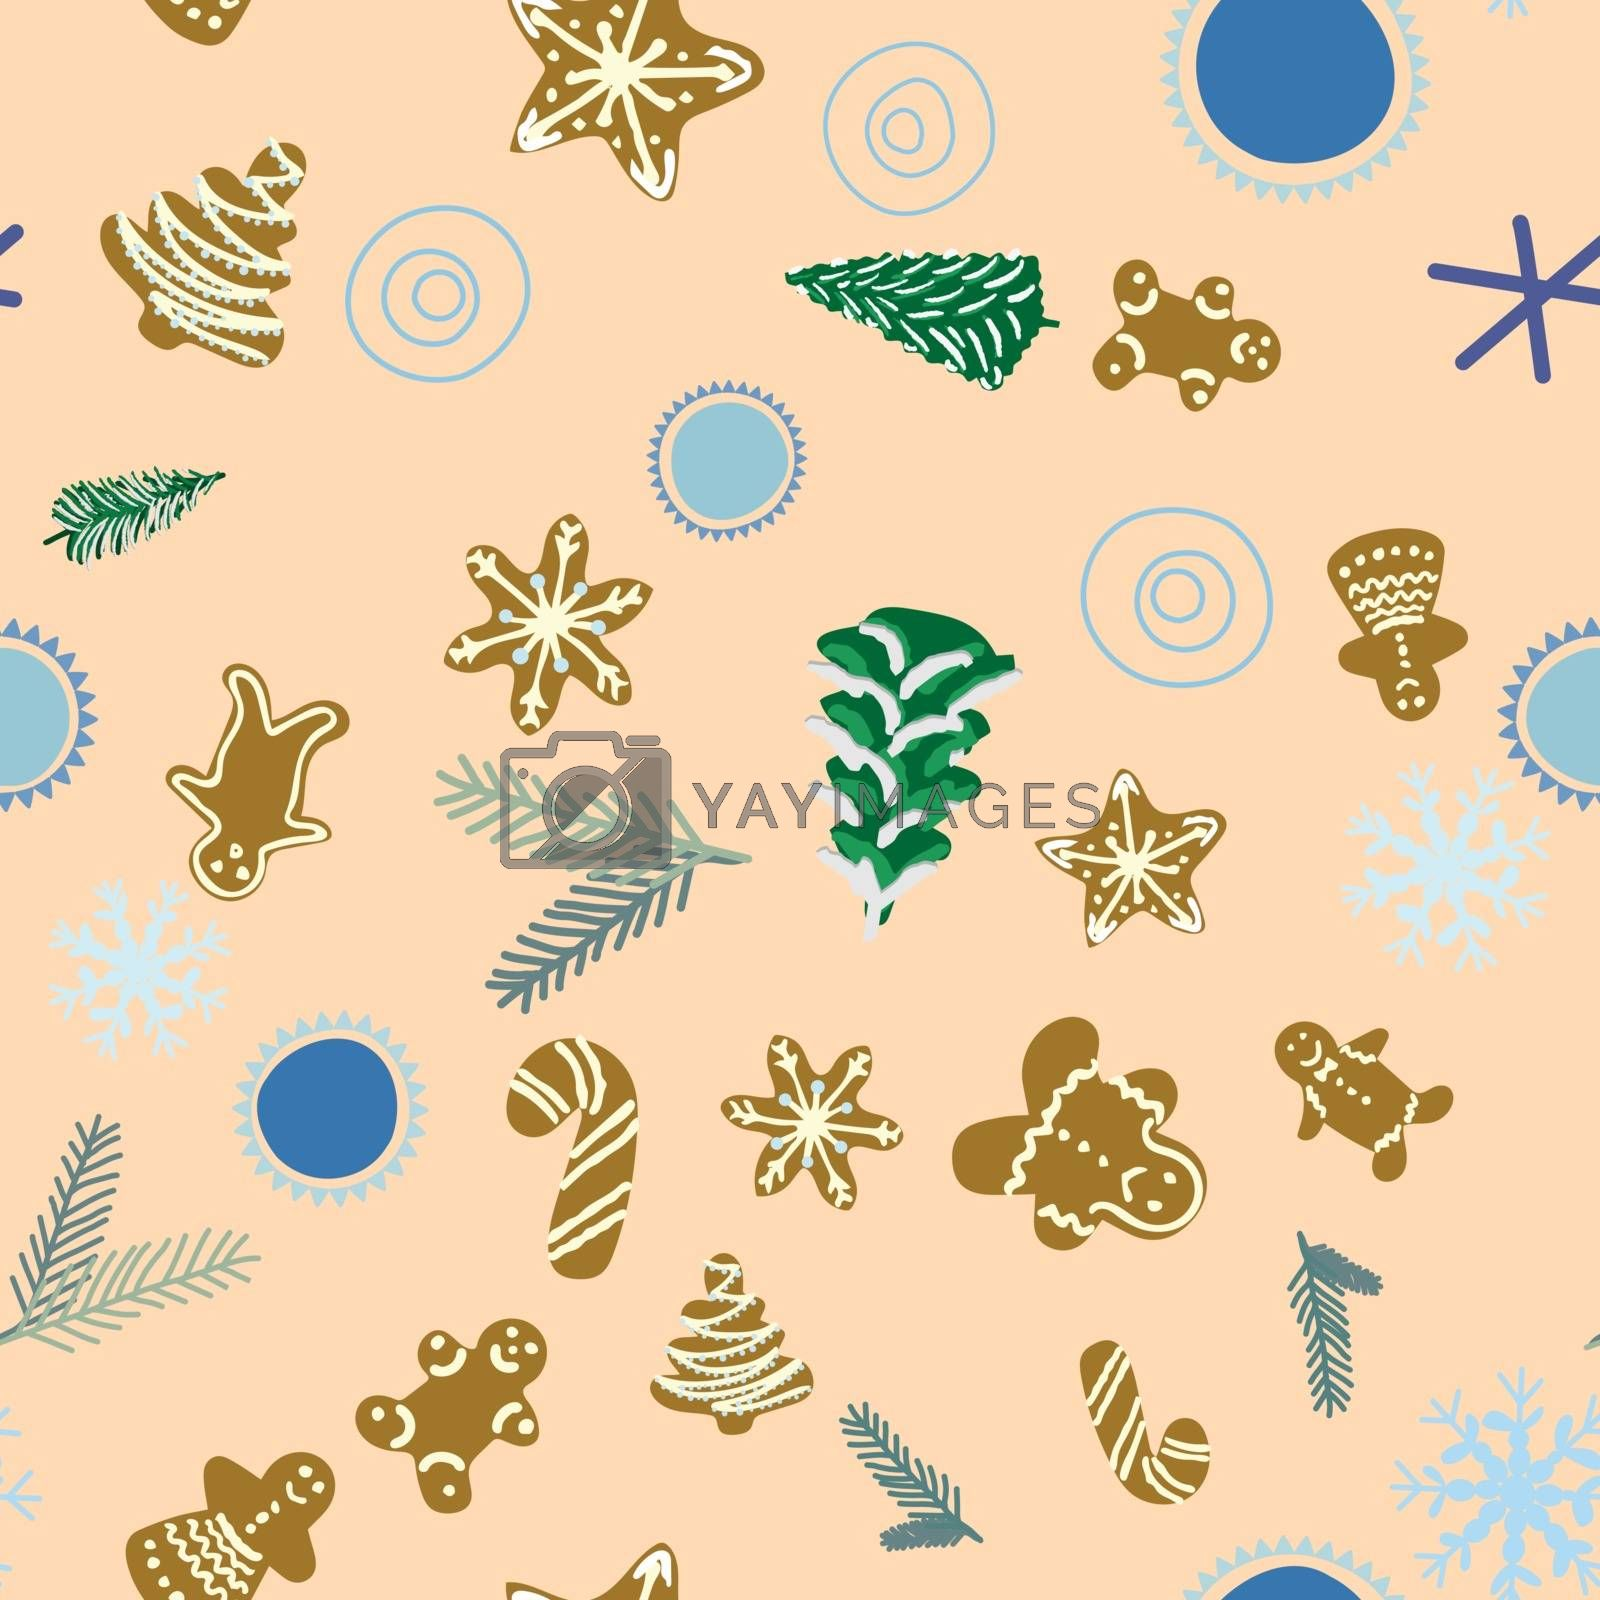 Royalty free image of Gingerbread biscuits, pine trees and pine tree twigs seamless pa by Nata_Prando